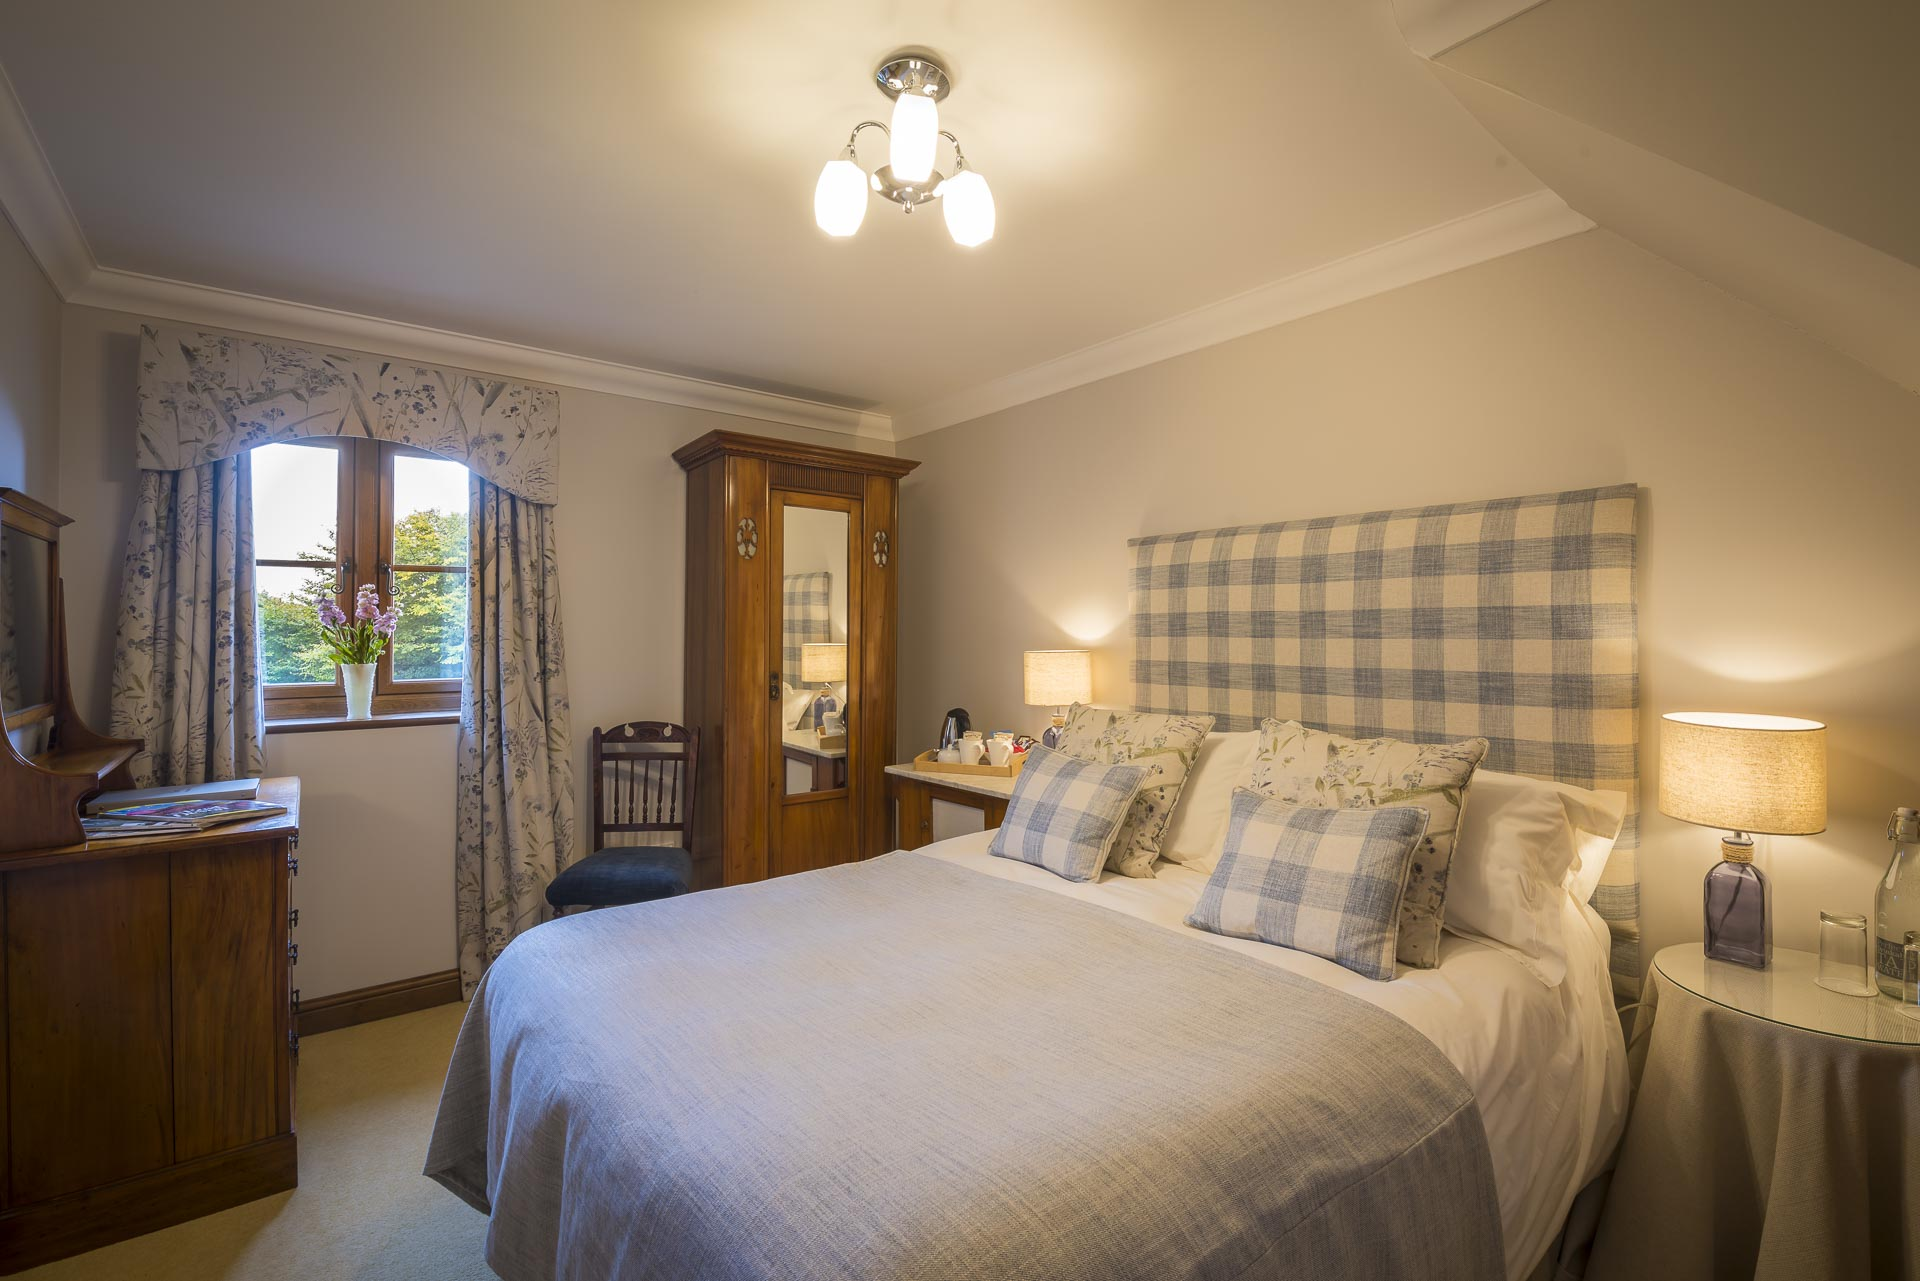 Double room at Copps Castle Bed and Breakfast, Hartland, North Devon